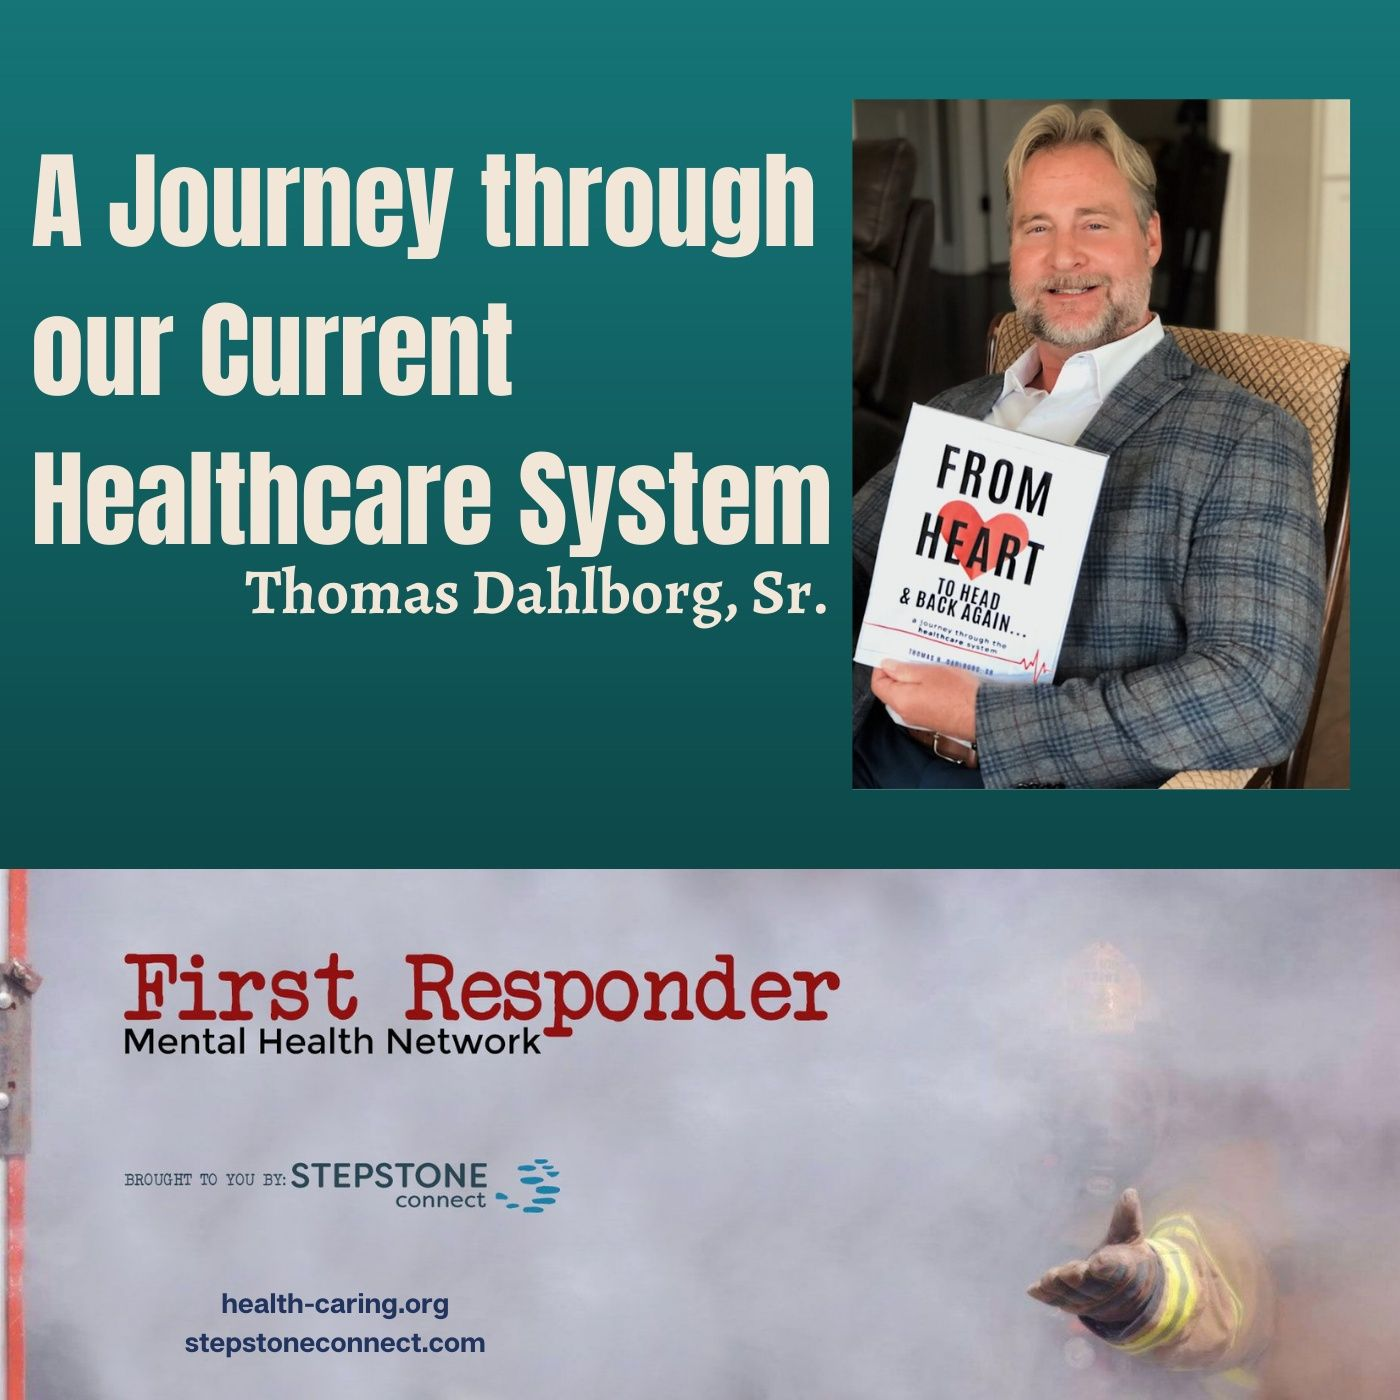 Mental Health News Radio - A Journey through our Current Healthcare System